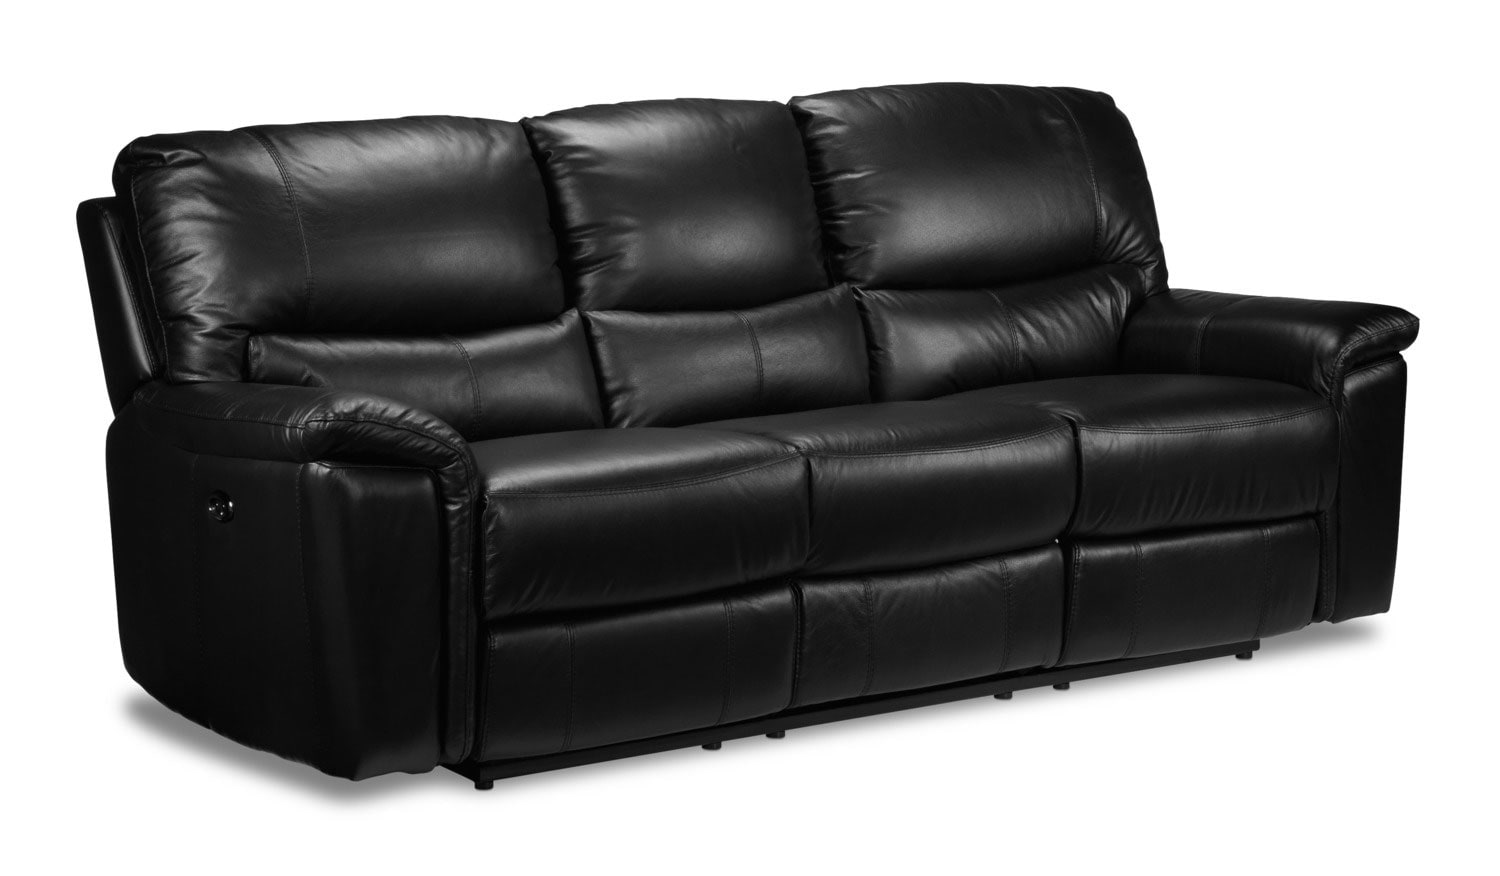 Nolan Power Reclining Sofa - Black